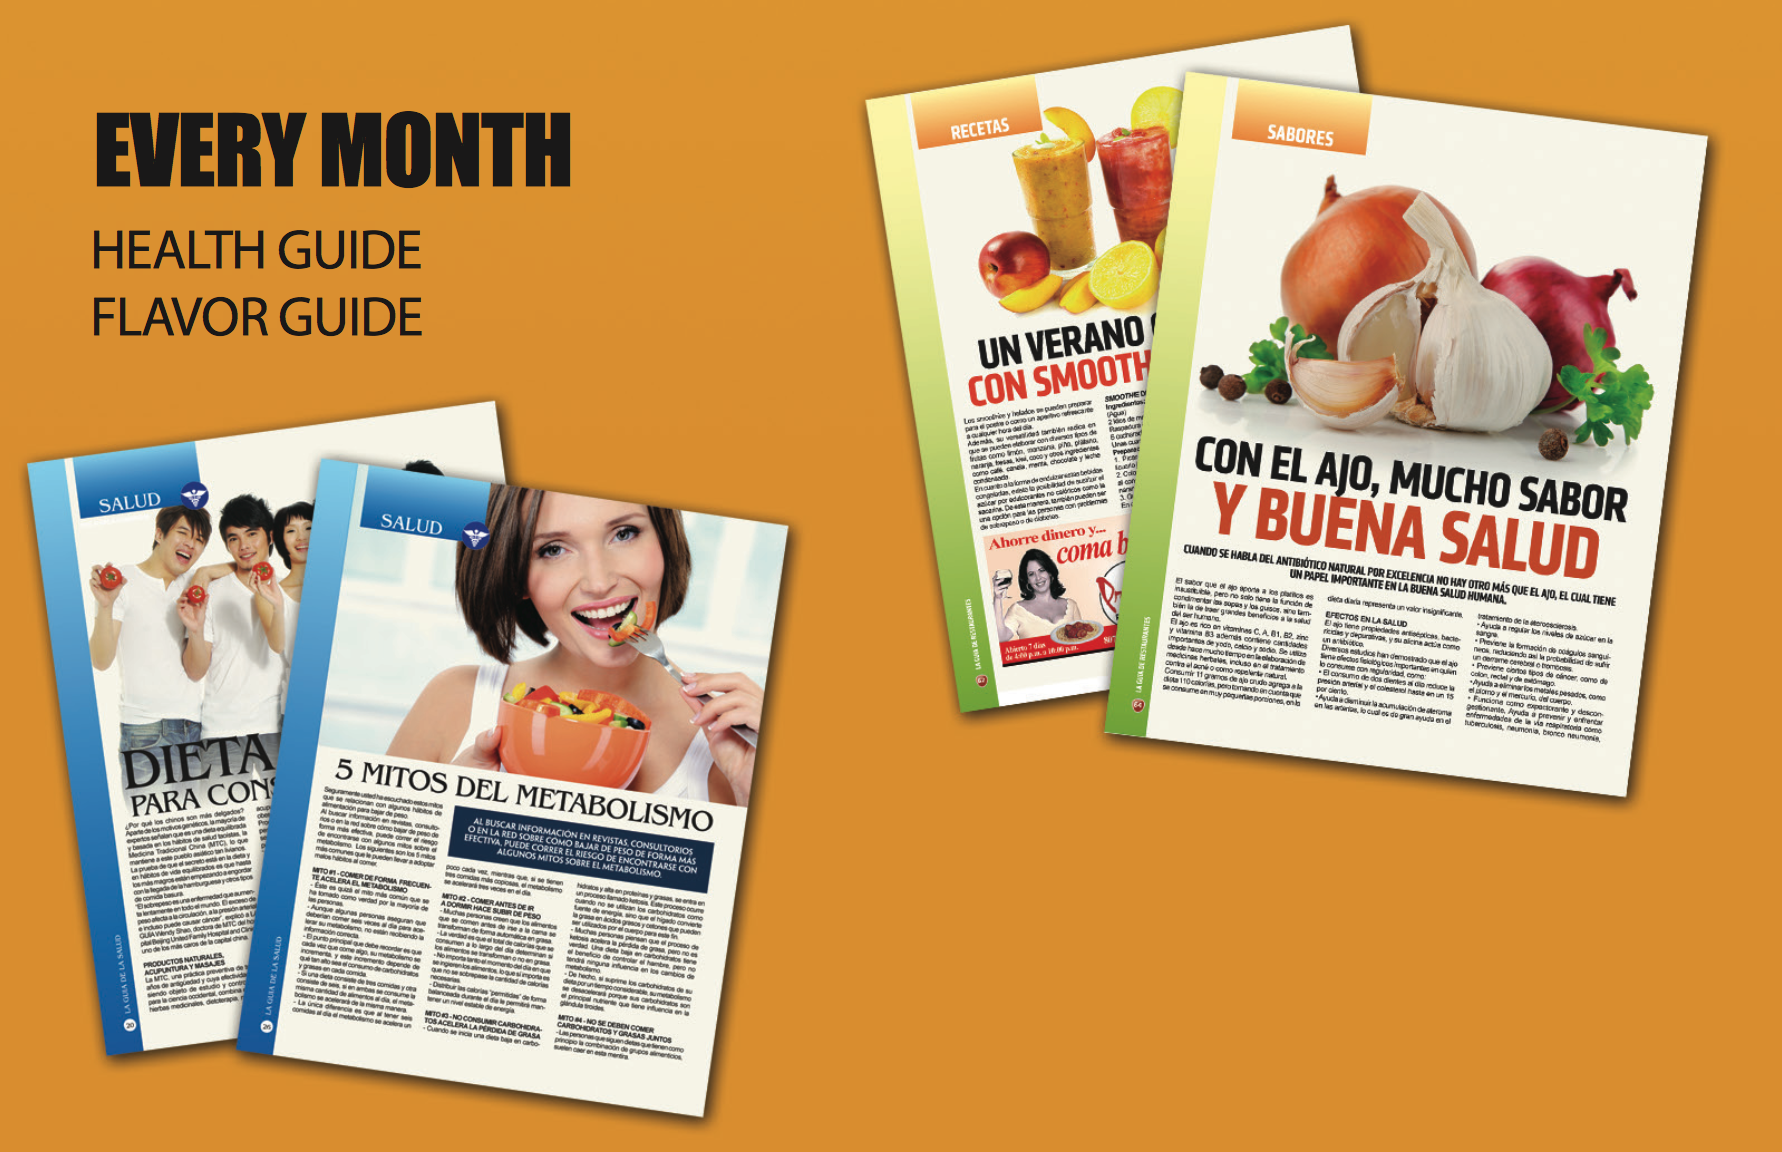 Our Hispanic Magazine in Tampa Bay publishes high quality content in areas of health, food, and entertainment